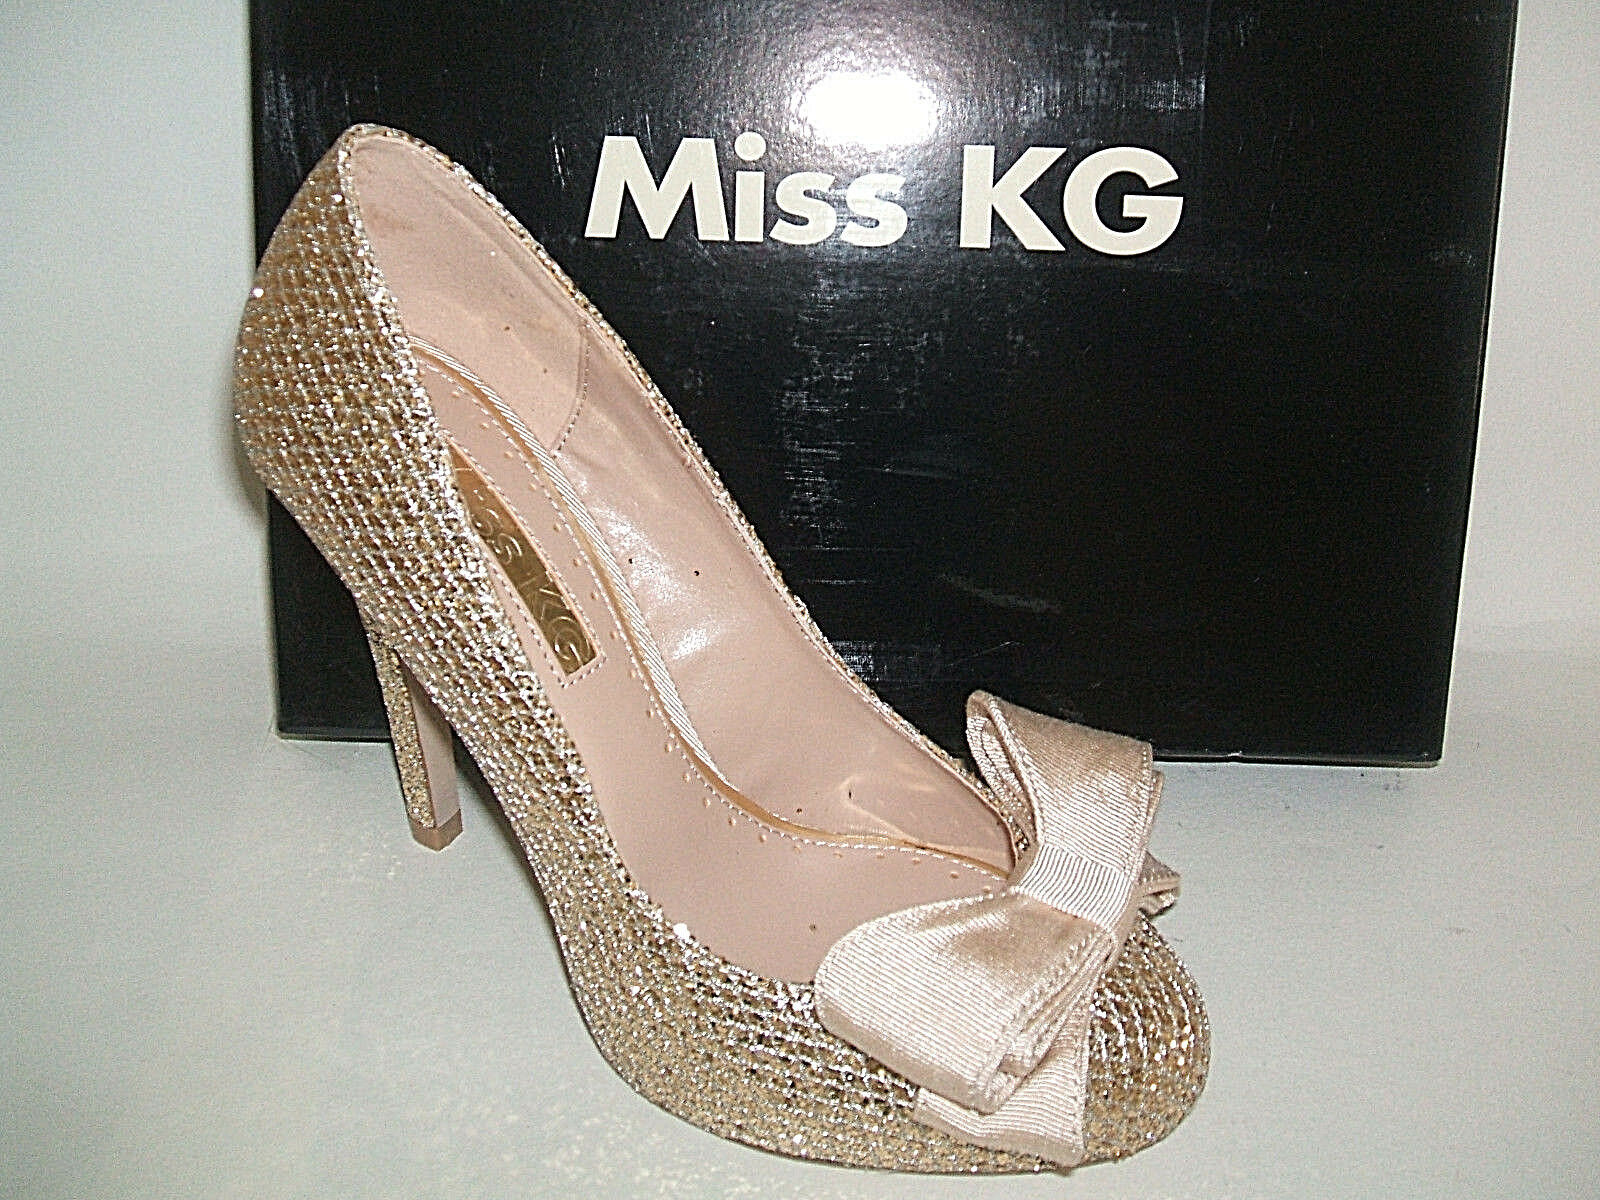 RRP £70 MISS KG SIZE 3 4 5 6 7 GEM GOLD GLITTER BEIGE BOW OCCASION COURT SHOES